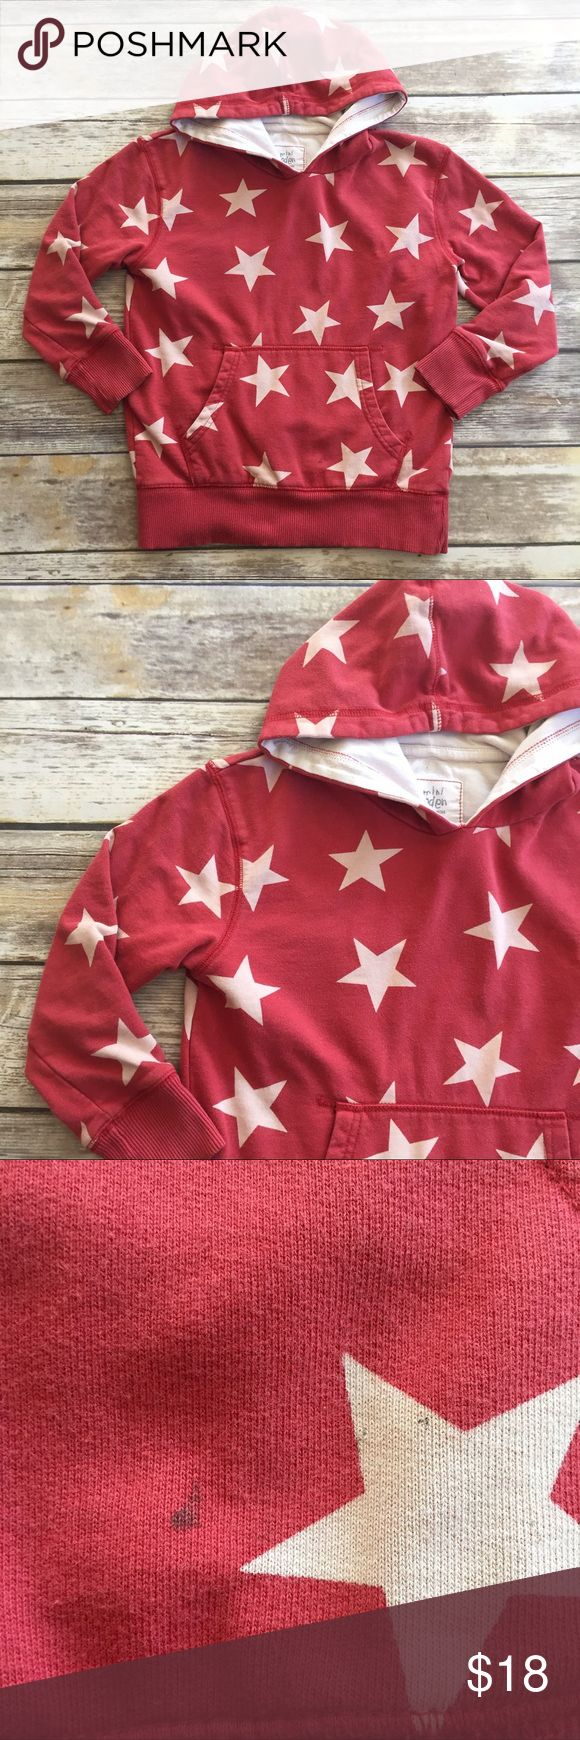 Mini Boden Hoodie Red zip up hoodie with white stars. GUC for some wash fade and a small black stain on front pocket, see photos. Size 7-8. Mini Boden Shirts & Tops Sweatshirts & Hoodies